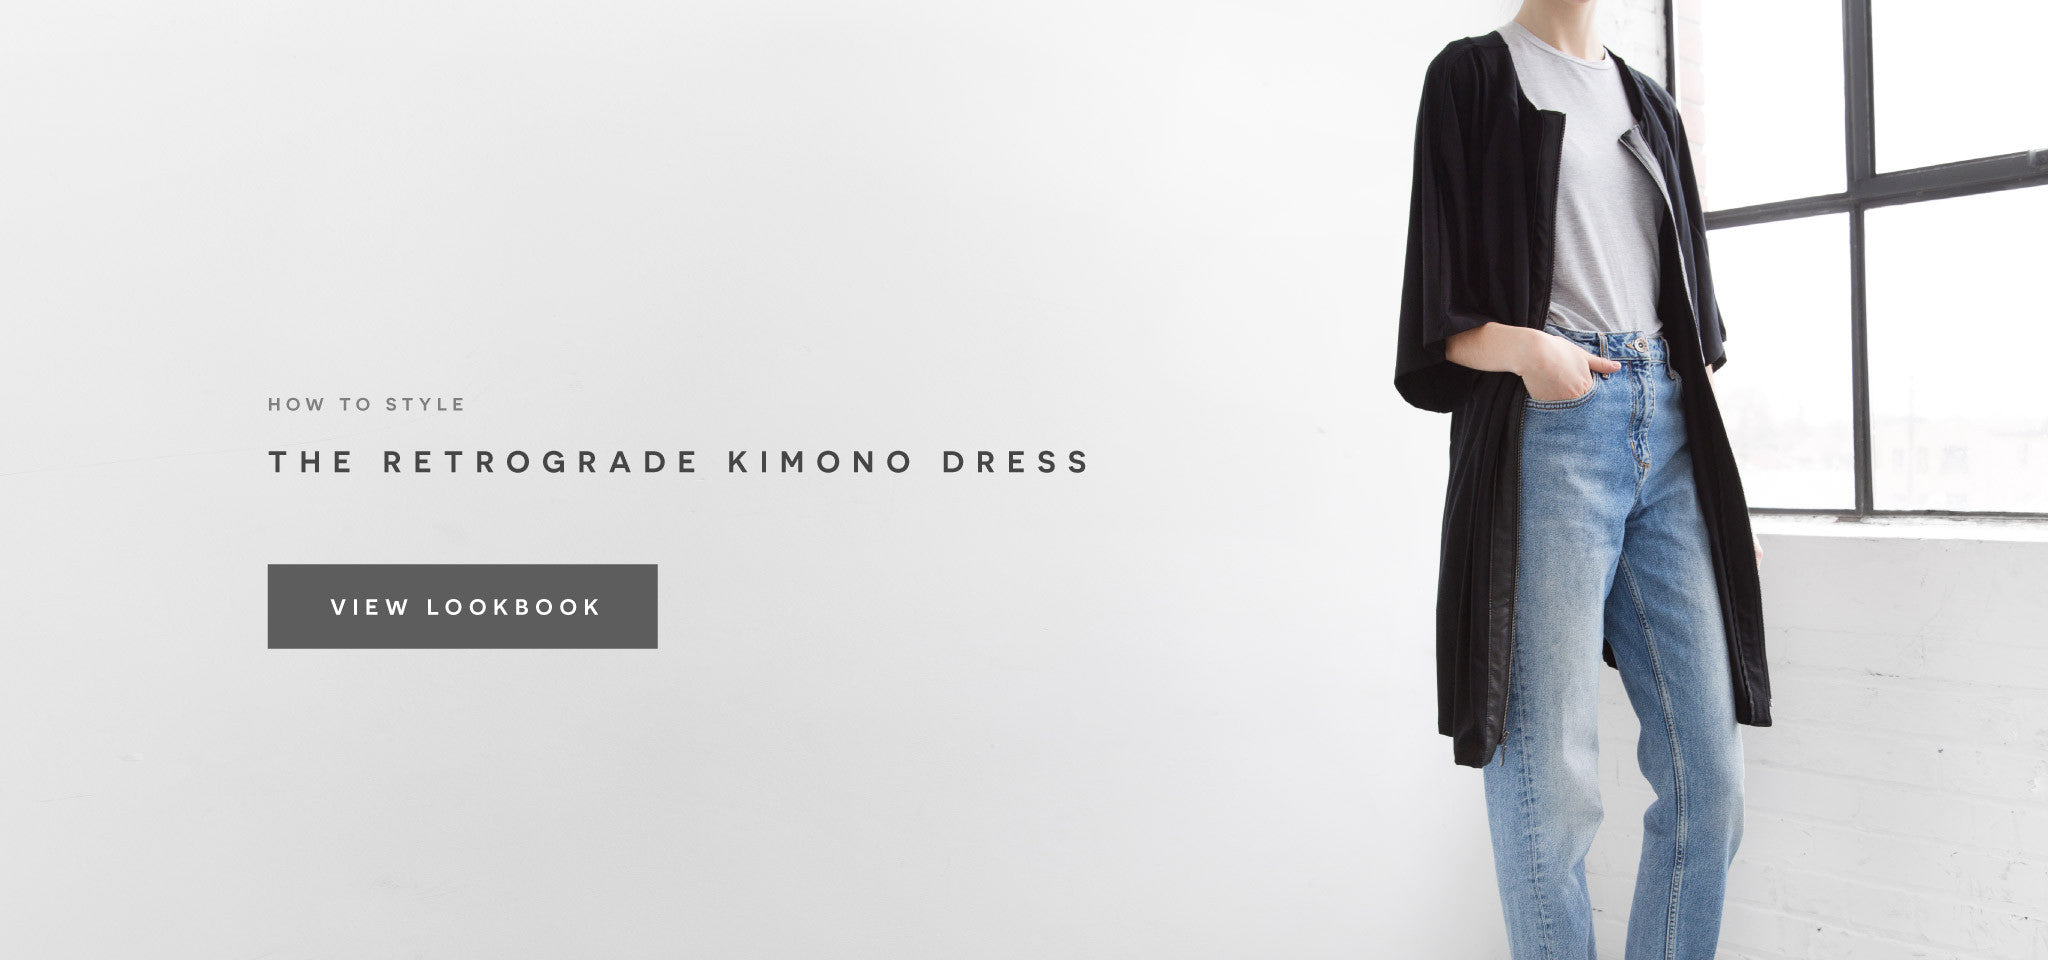 how to style the retrograde kimono for a casual and dressed up look for work and for going out